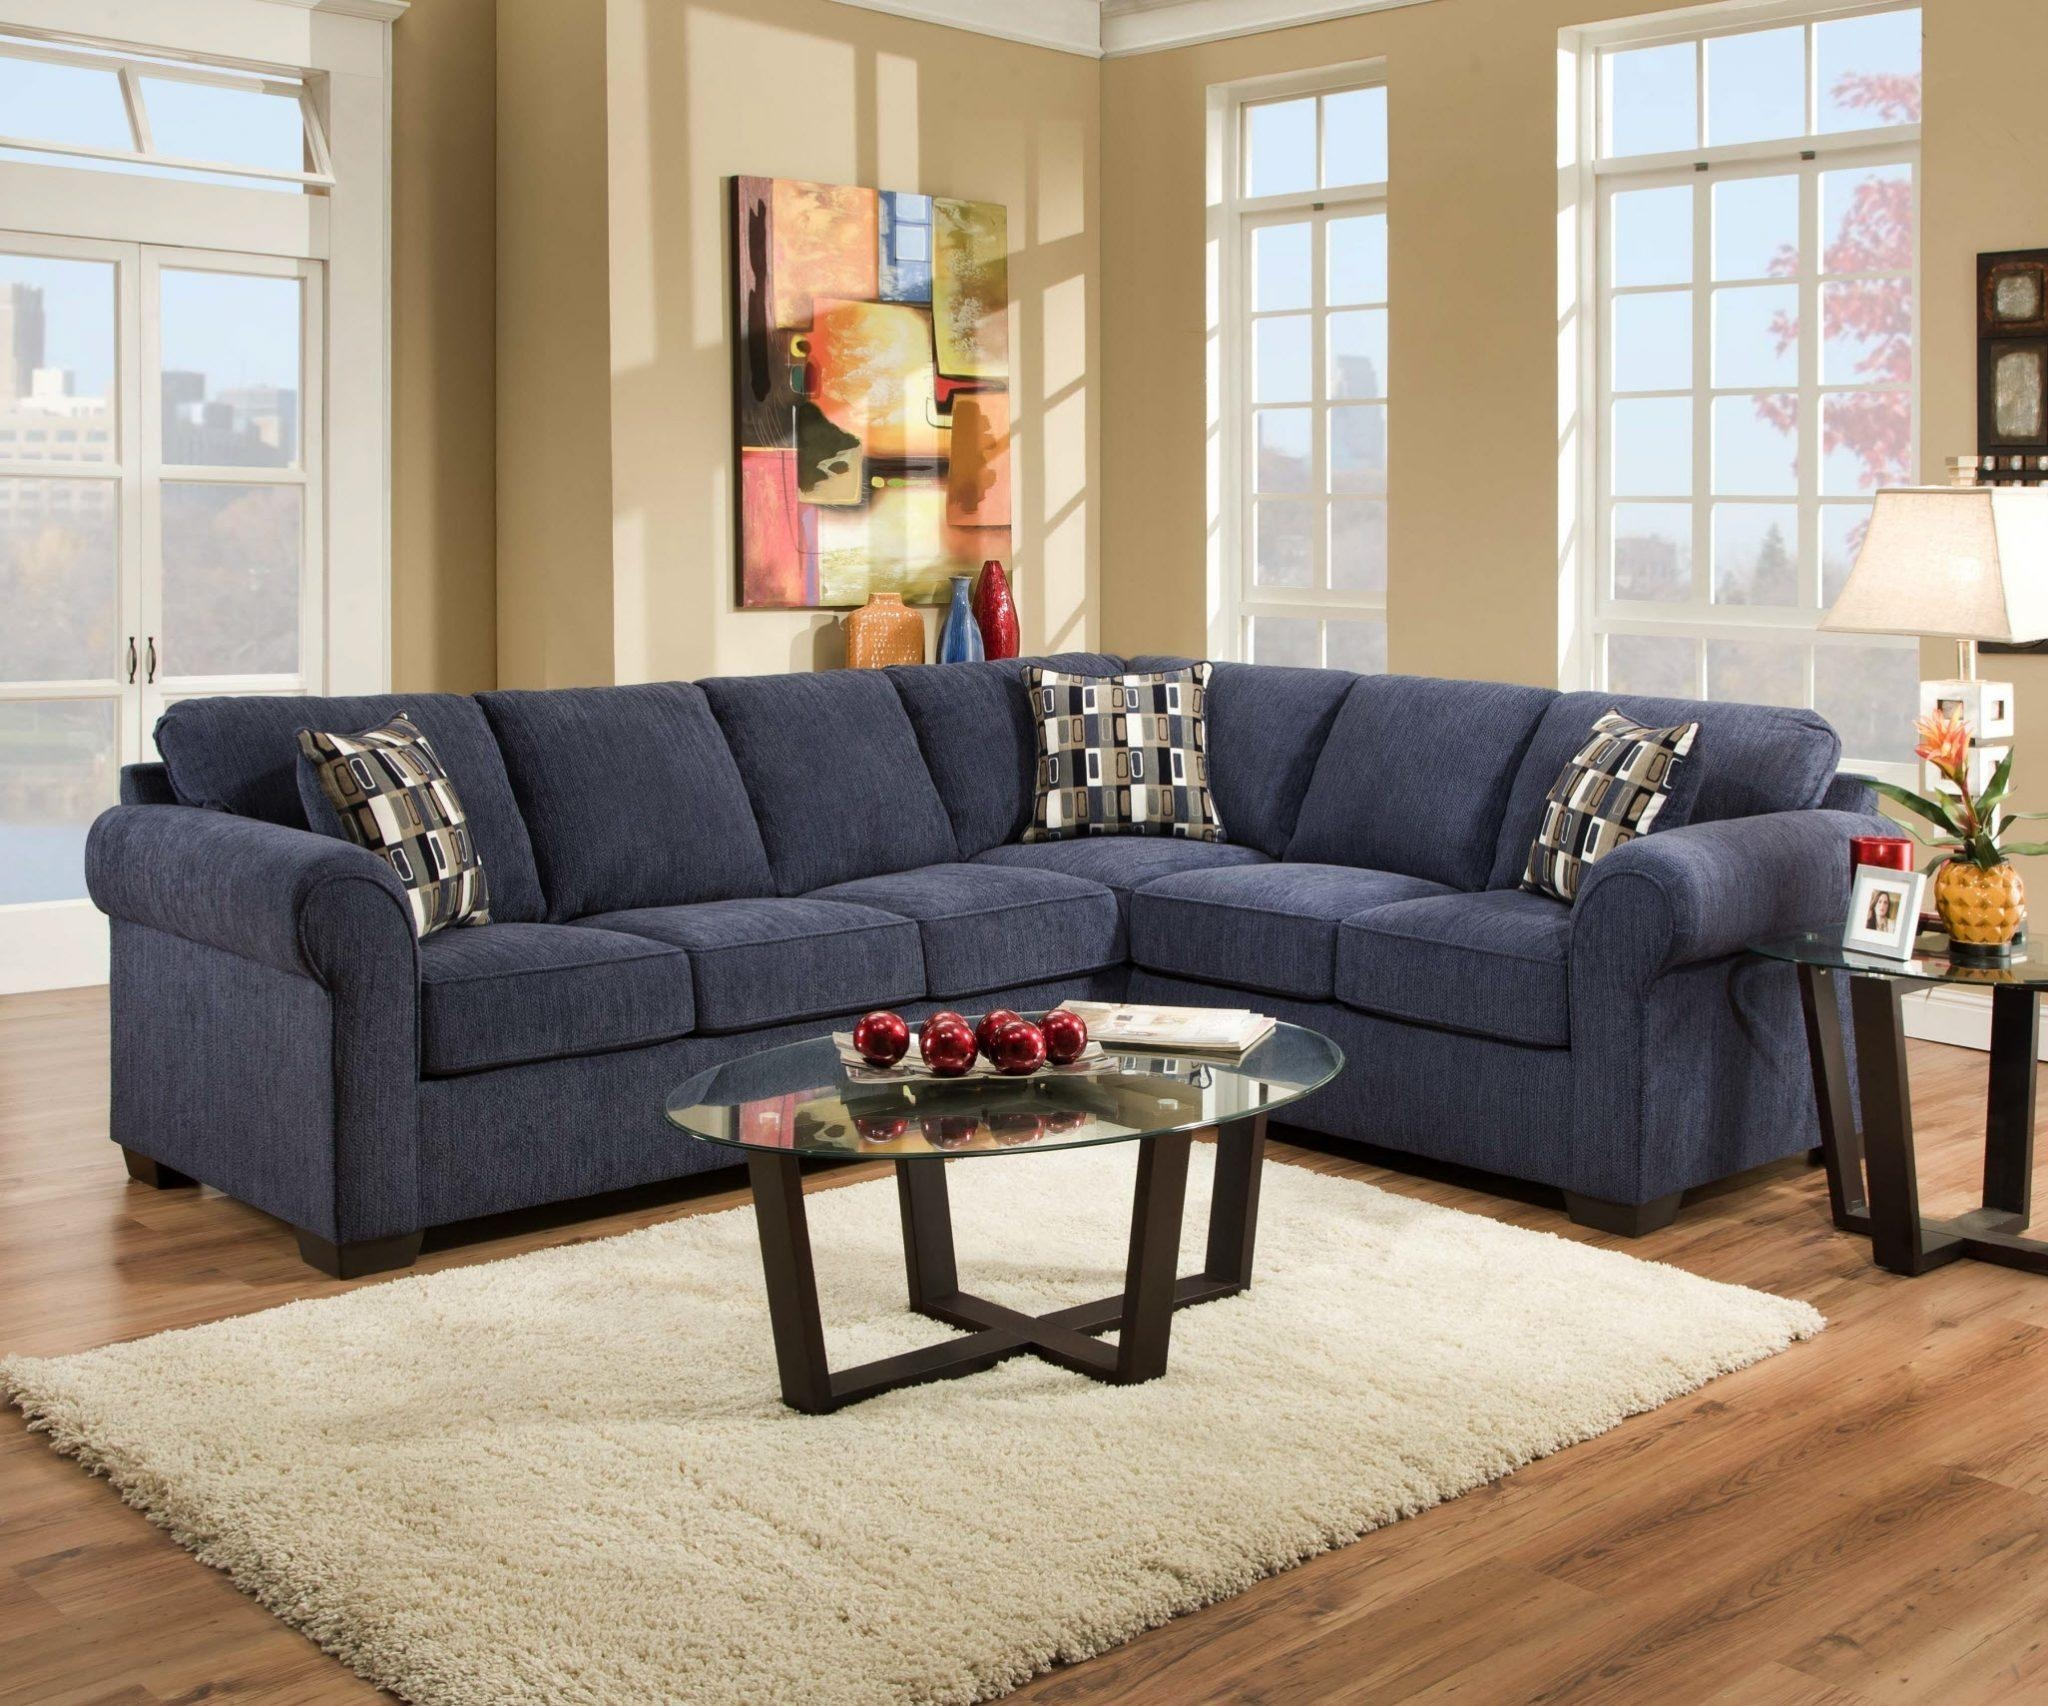 L Shaped Sectional Sleeper Sofa – Leather Sectional Sofa Inside L Shaped Sectional Sleeper Sofa (View 14 of 20)